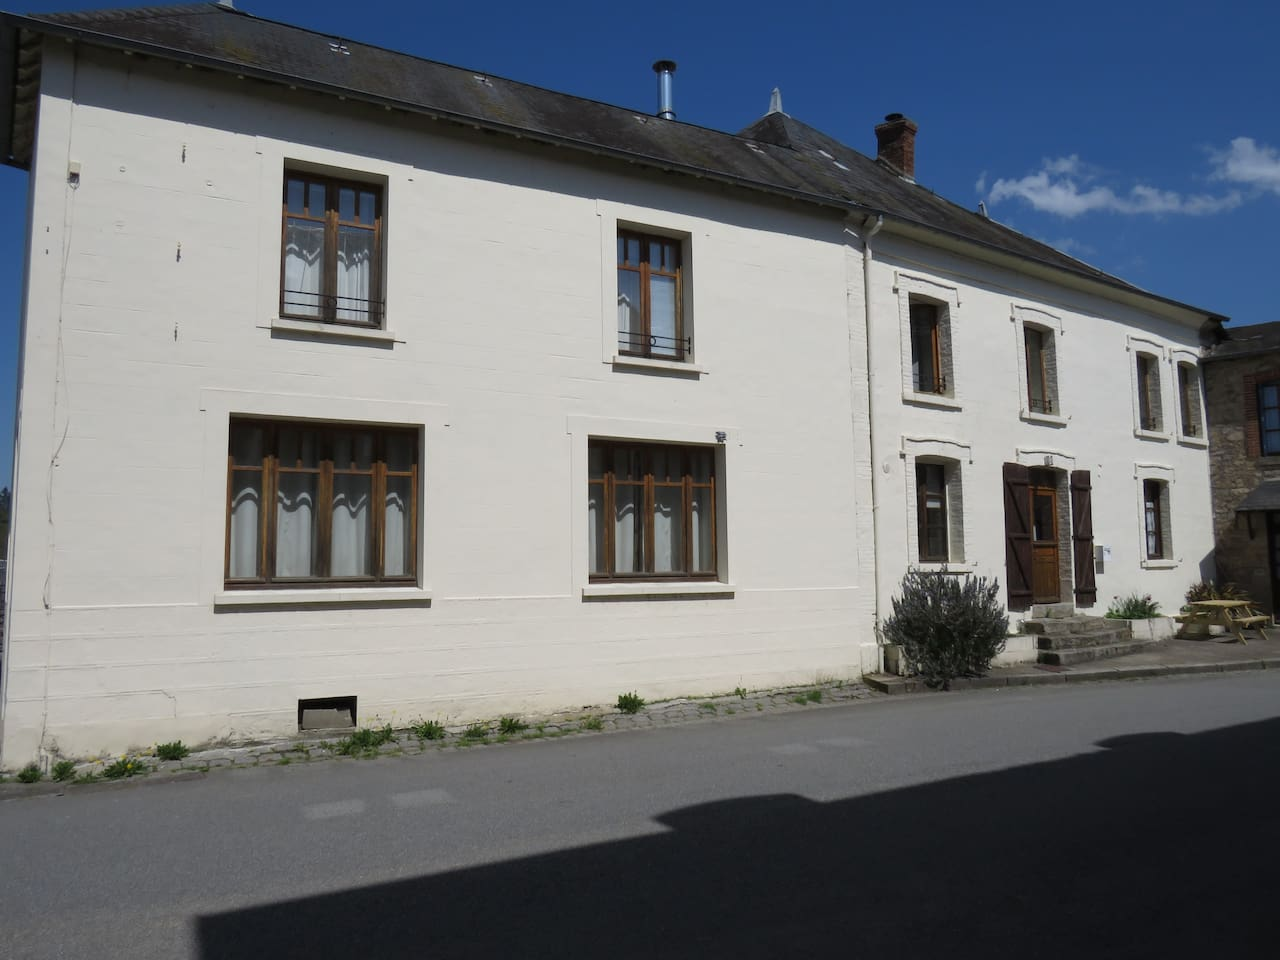 The house stands proud in the centre of the village, just ask for Maison Blanche.